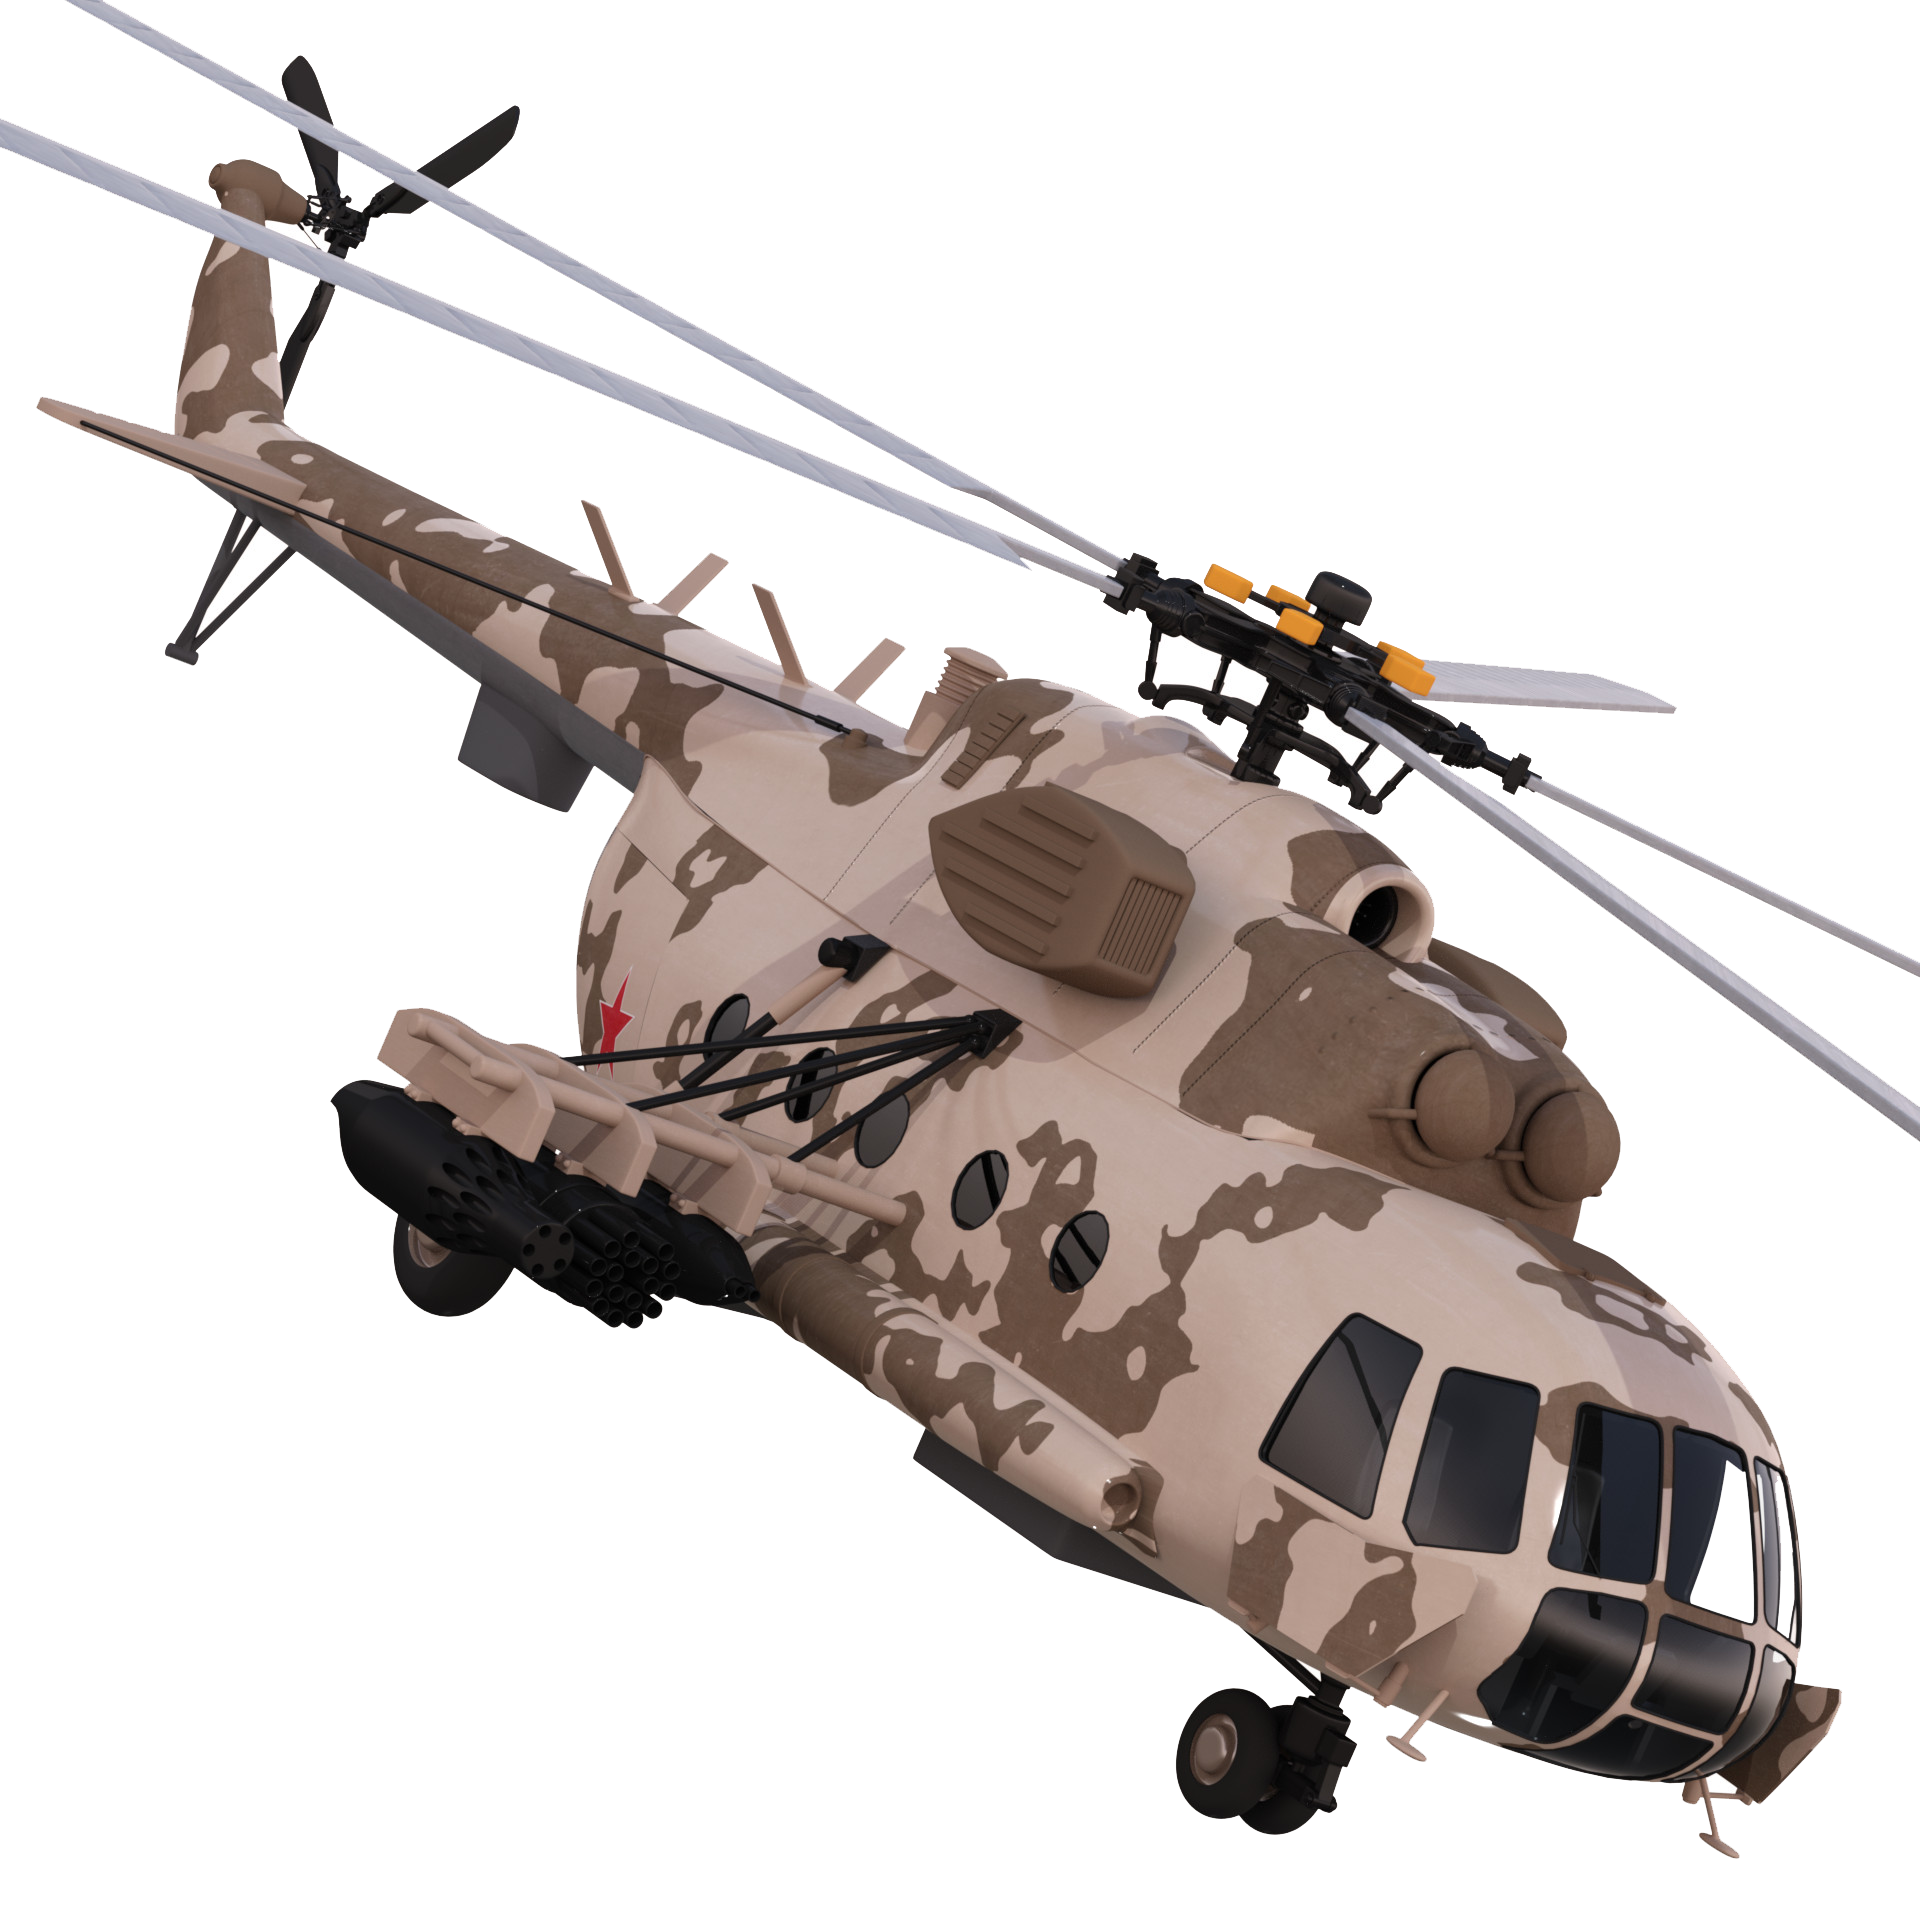 Png Format Images Of Helicopter image #40850